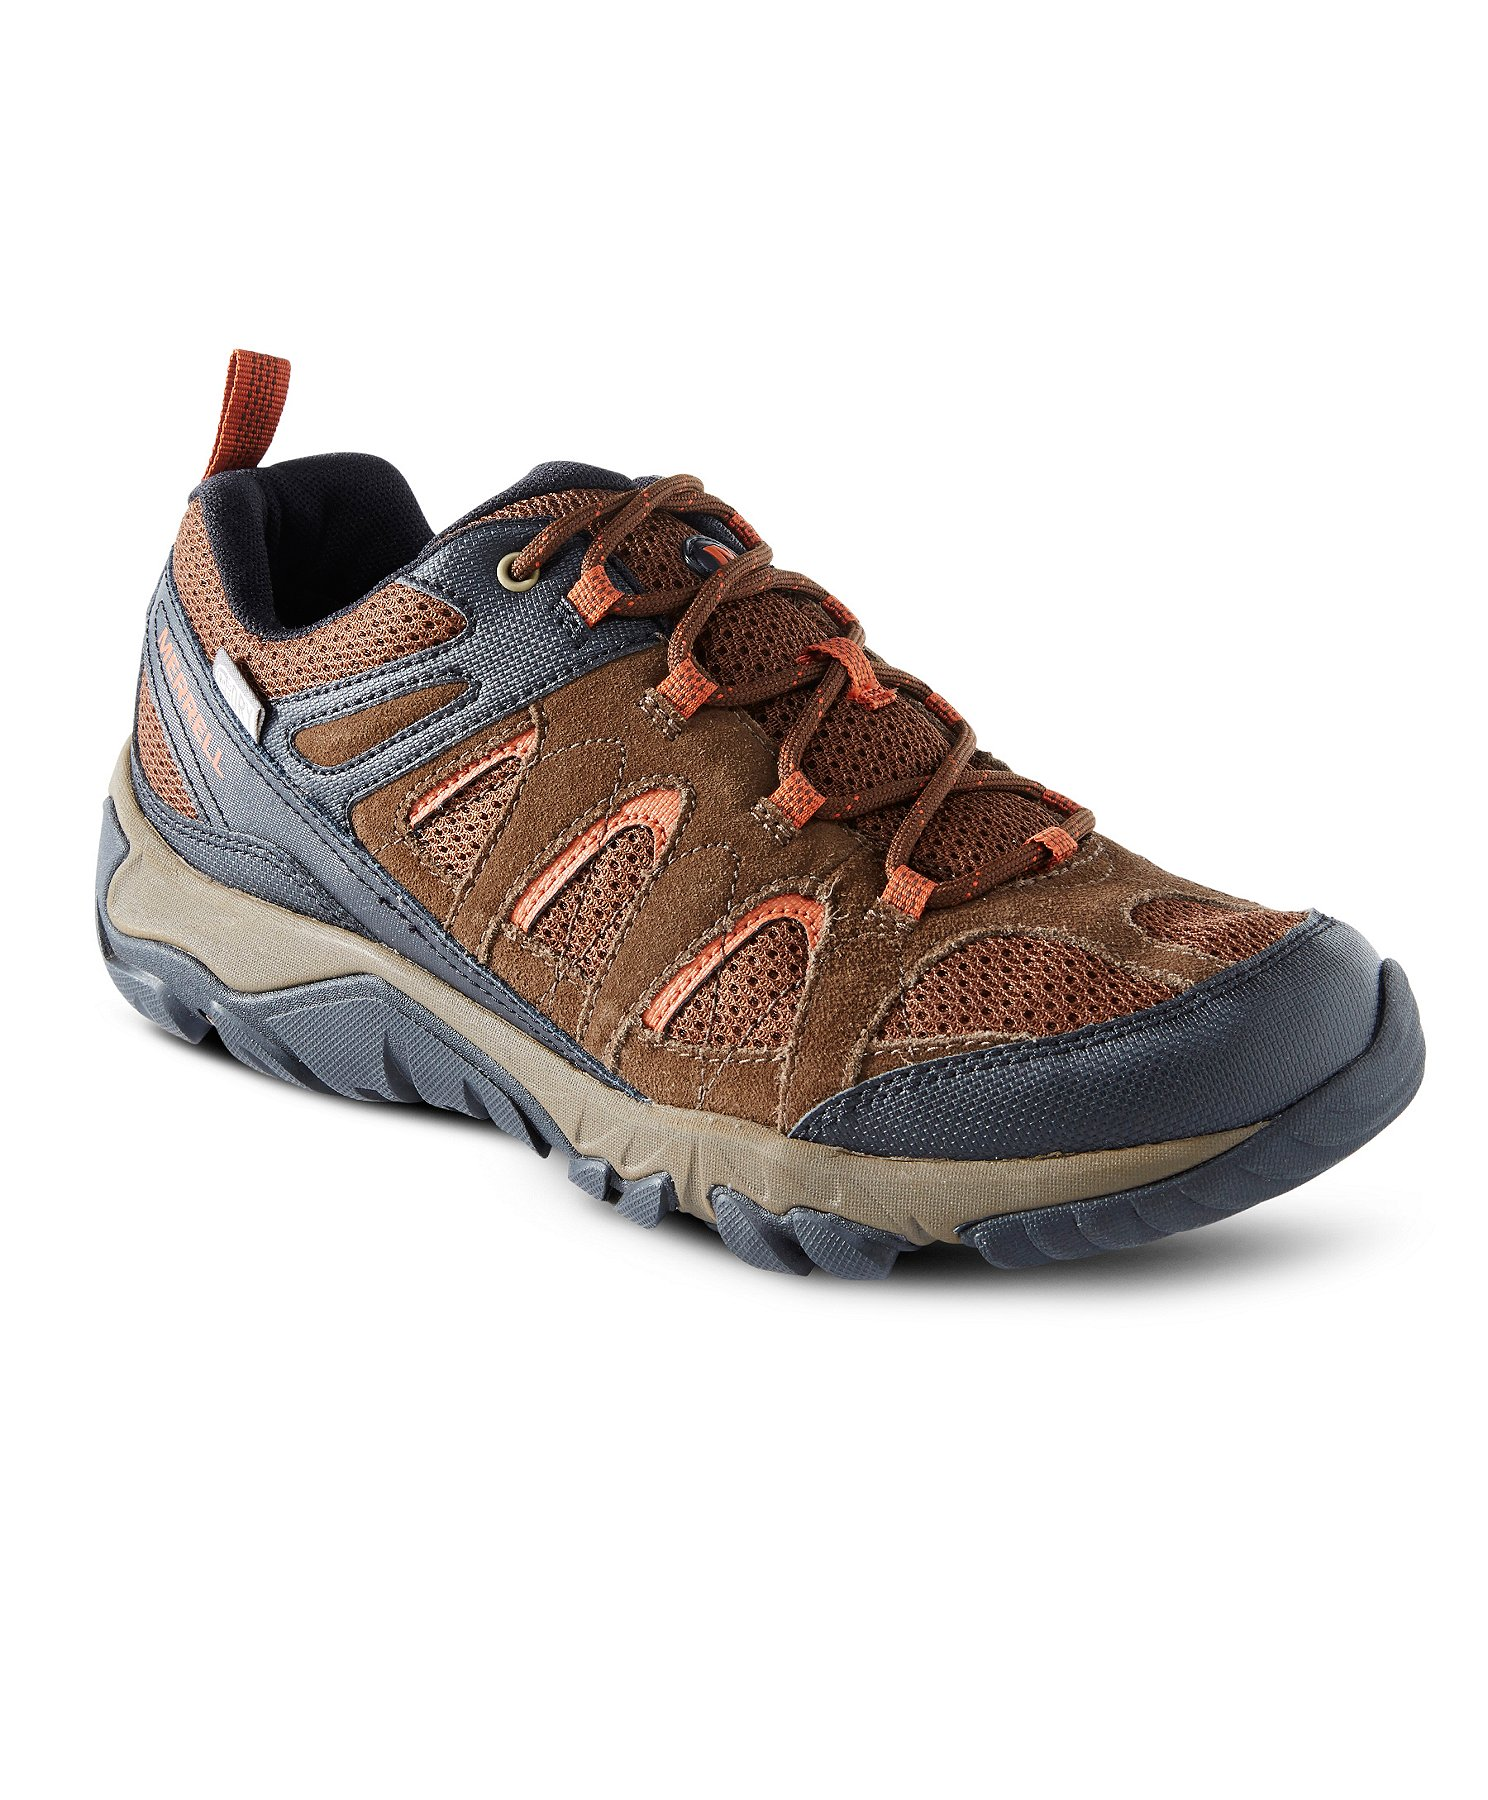 69116793 Men's Outmost Waterproof Hiking Shoes - Wide